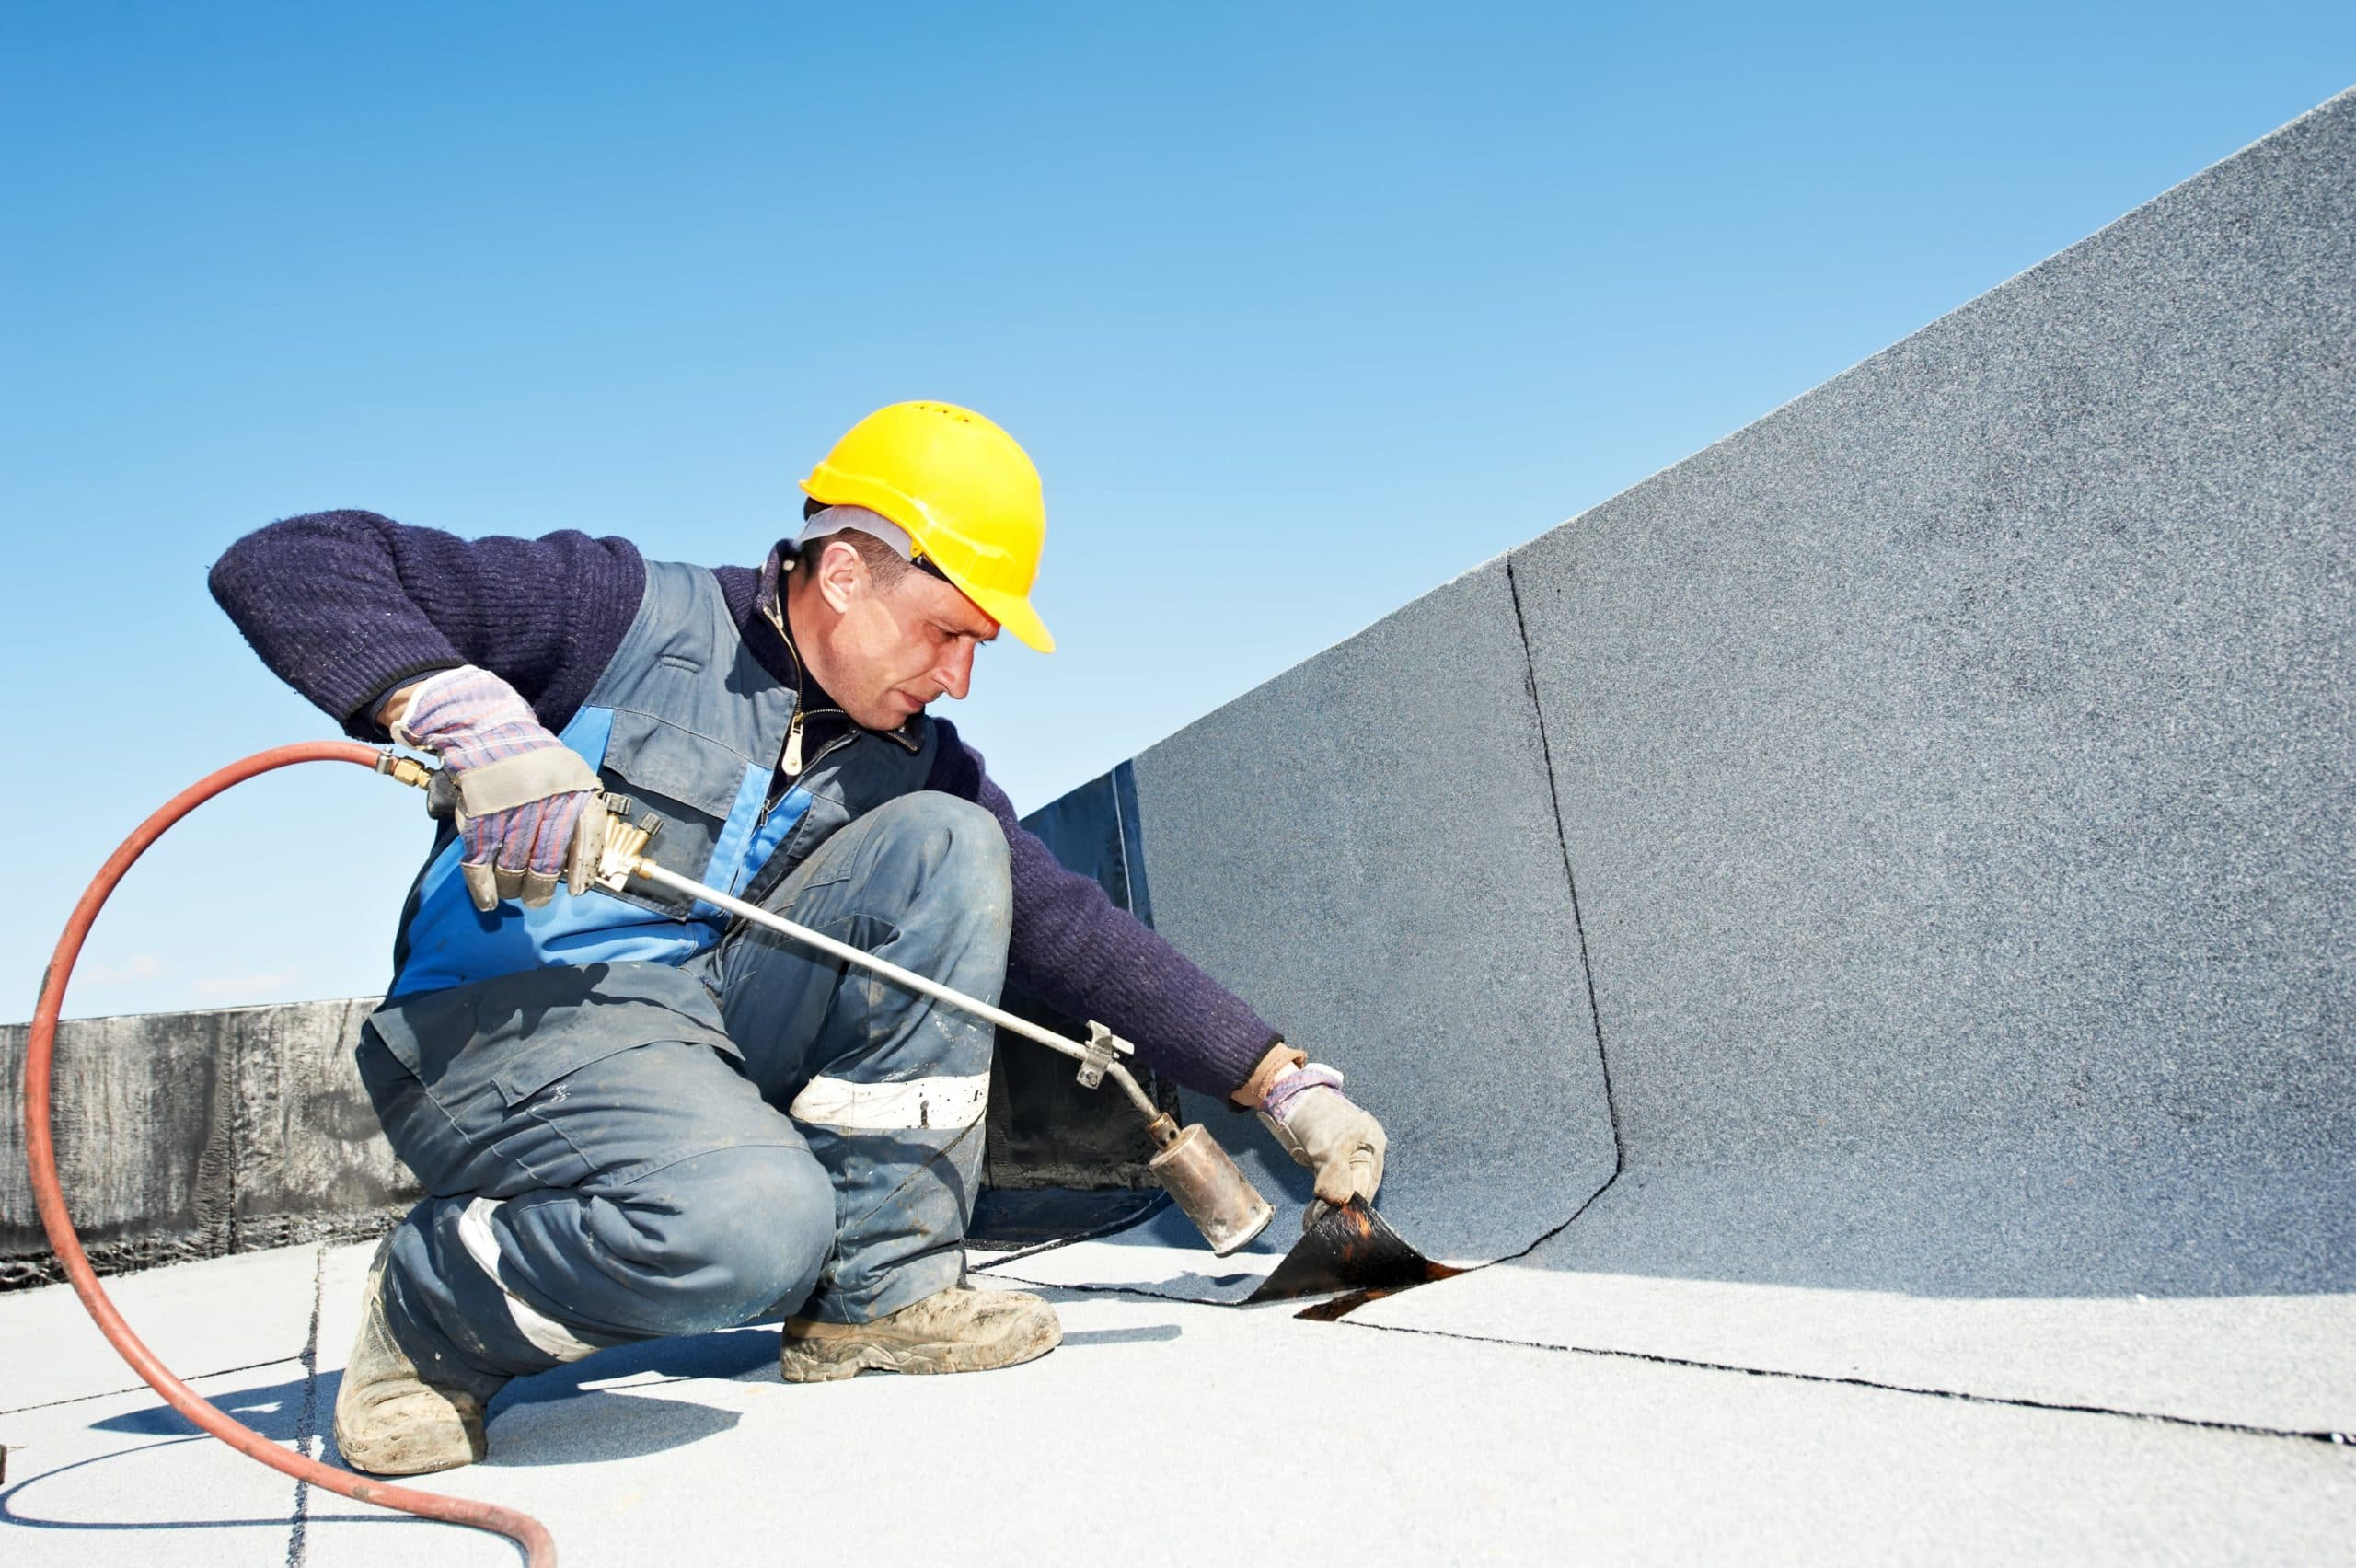 Roofer Working on a Flat Roof - Roofing Companies - Get Your Quote